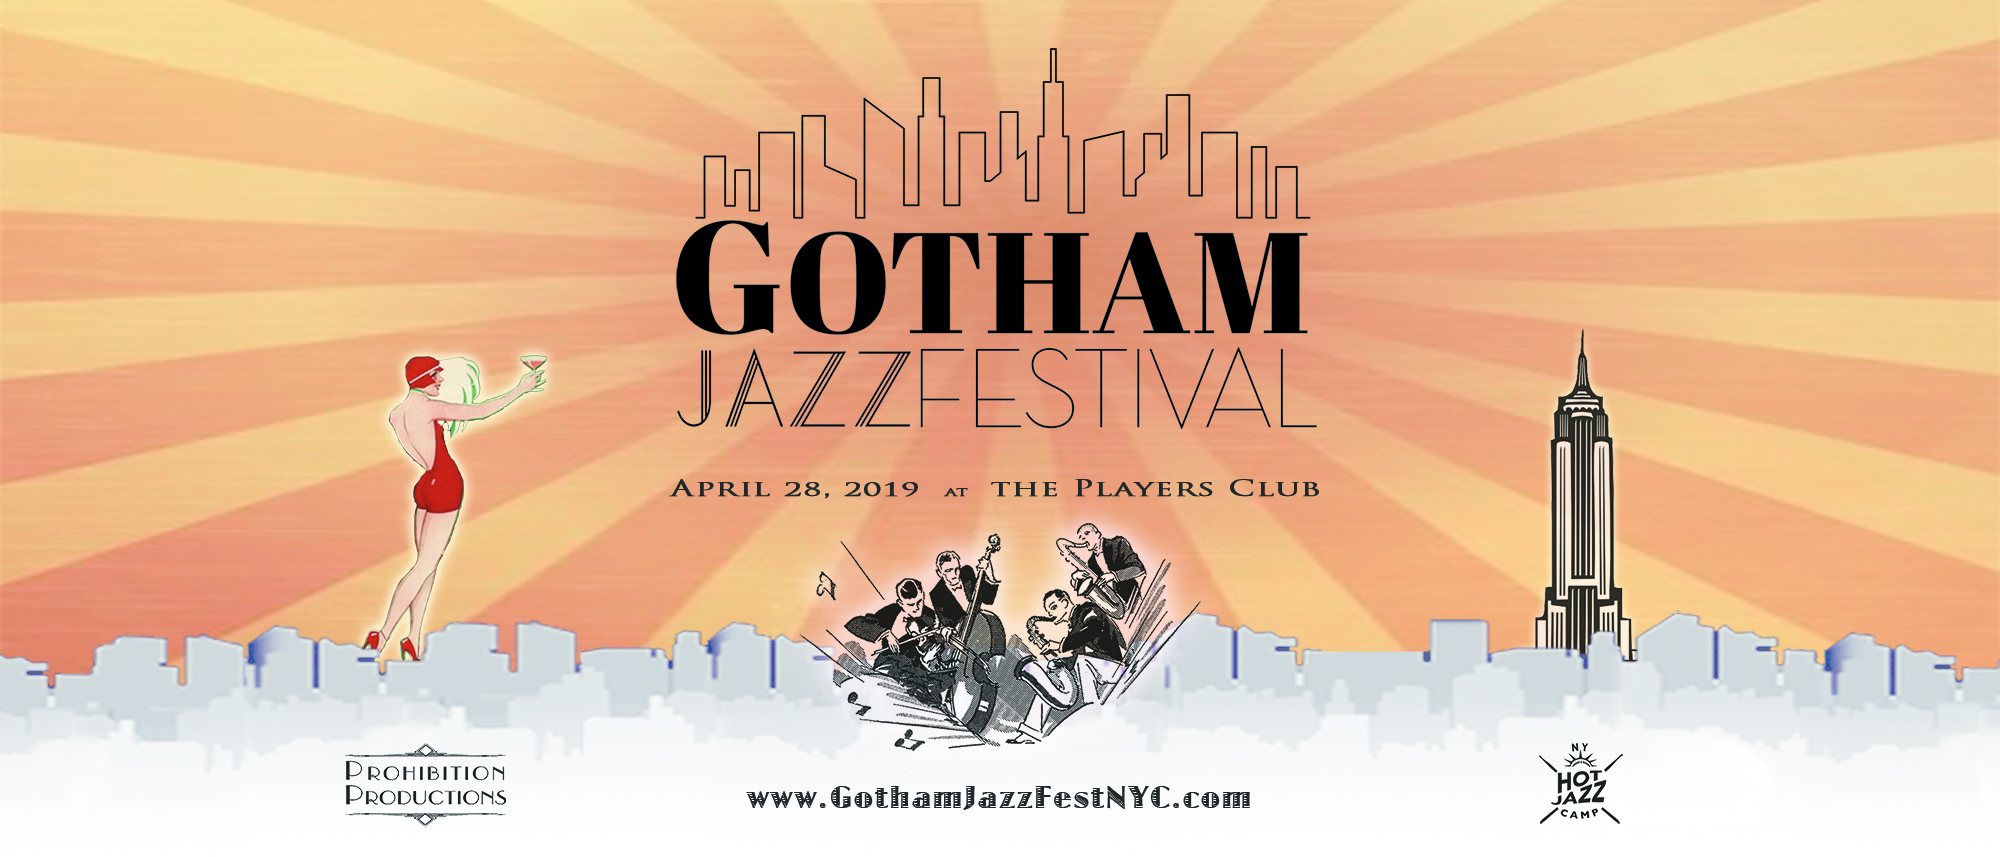 GOTHAM JAZZ FESTIVAL (April 28, 2019)